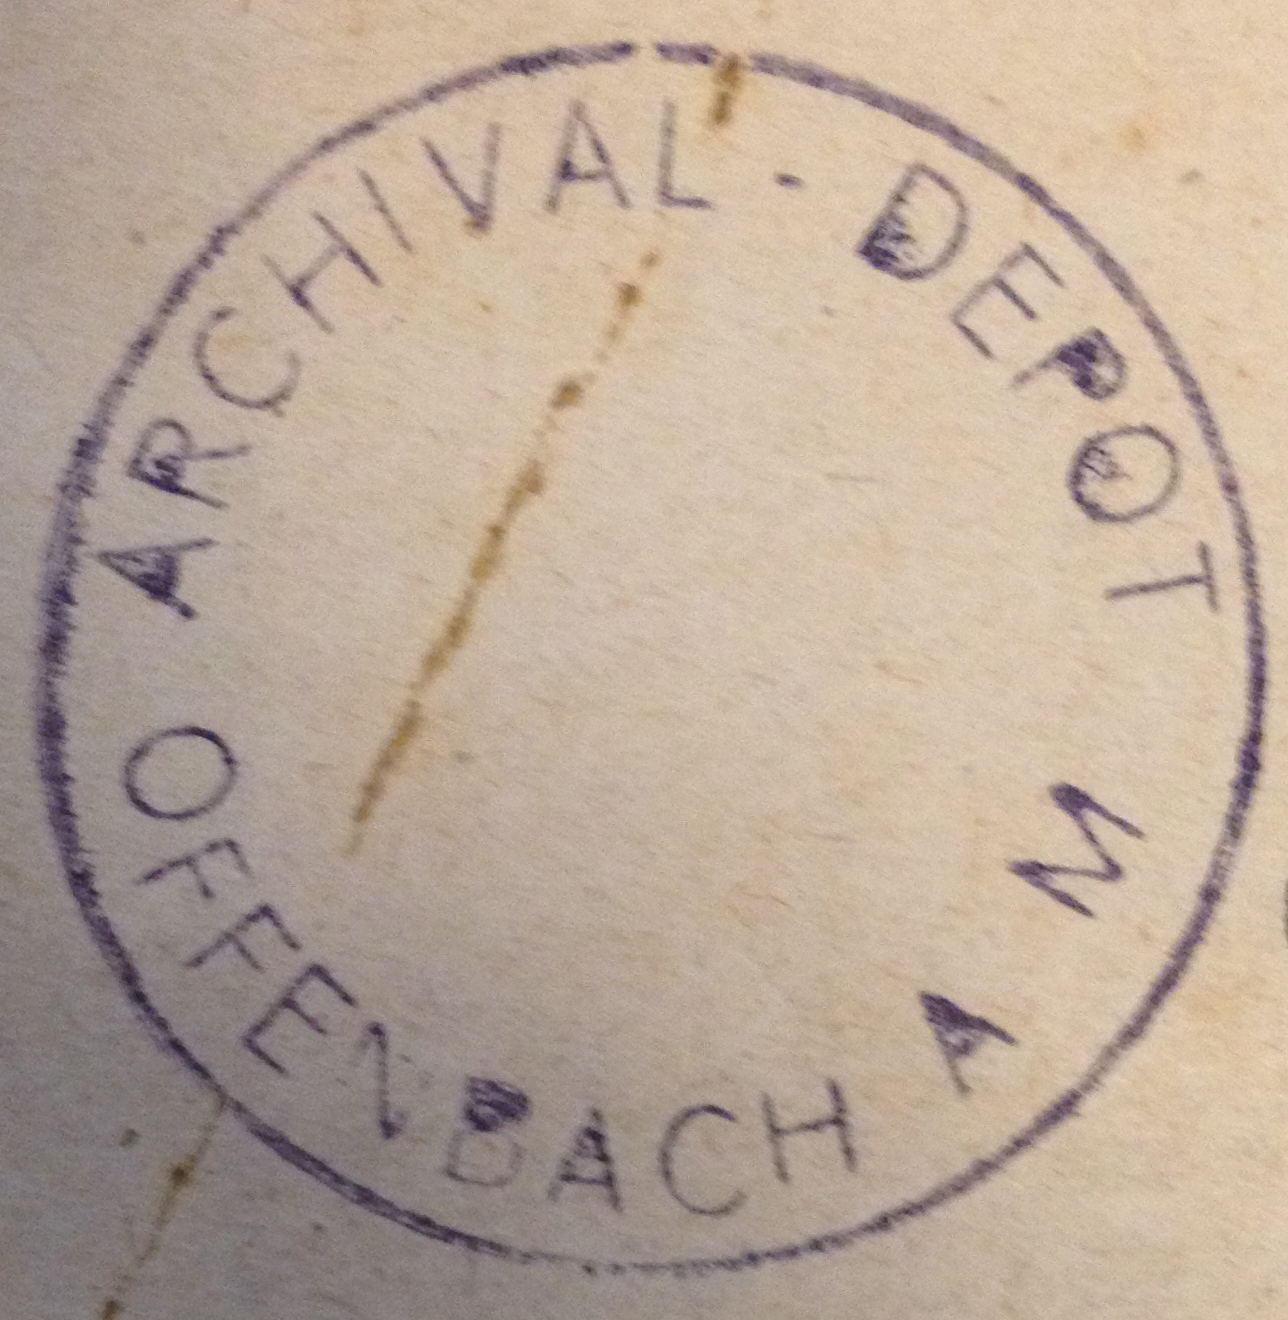 Offenbach Archival Depot